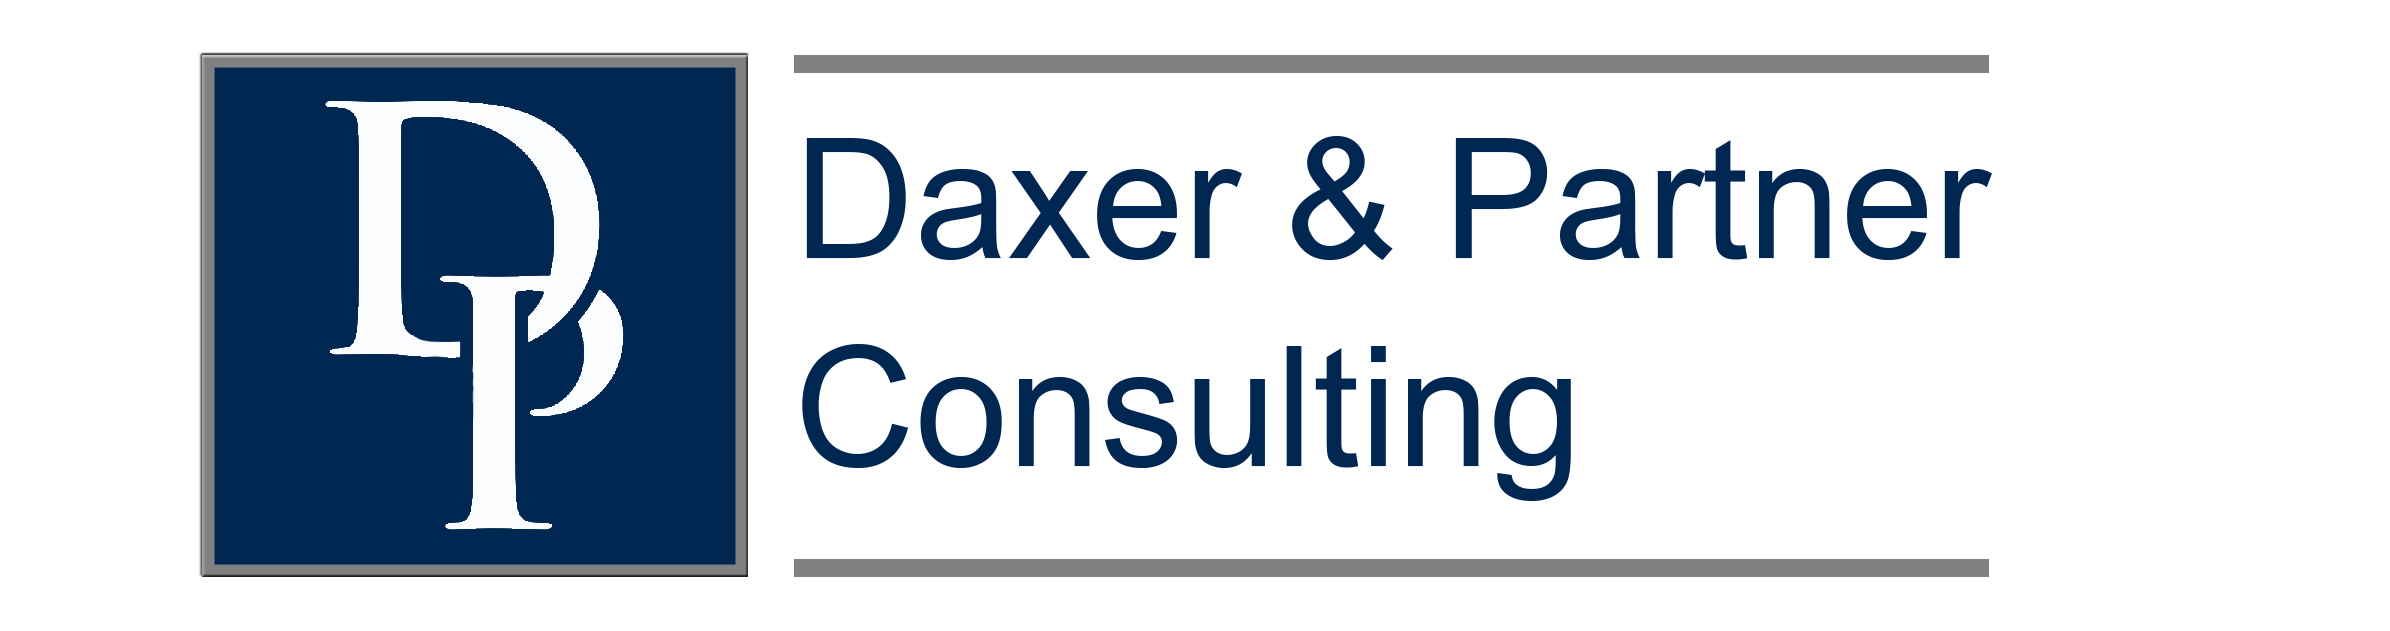 daxer-consulting.com